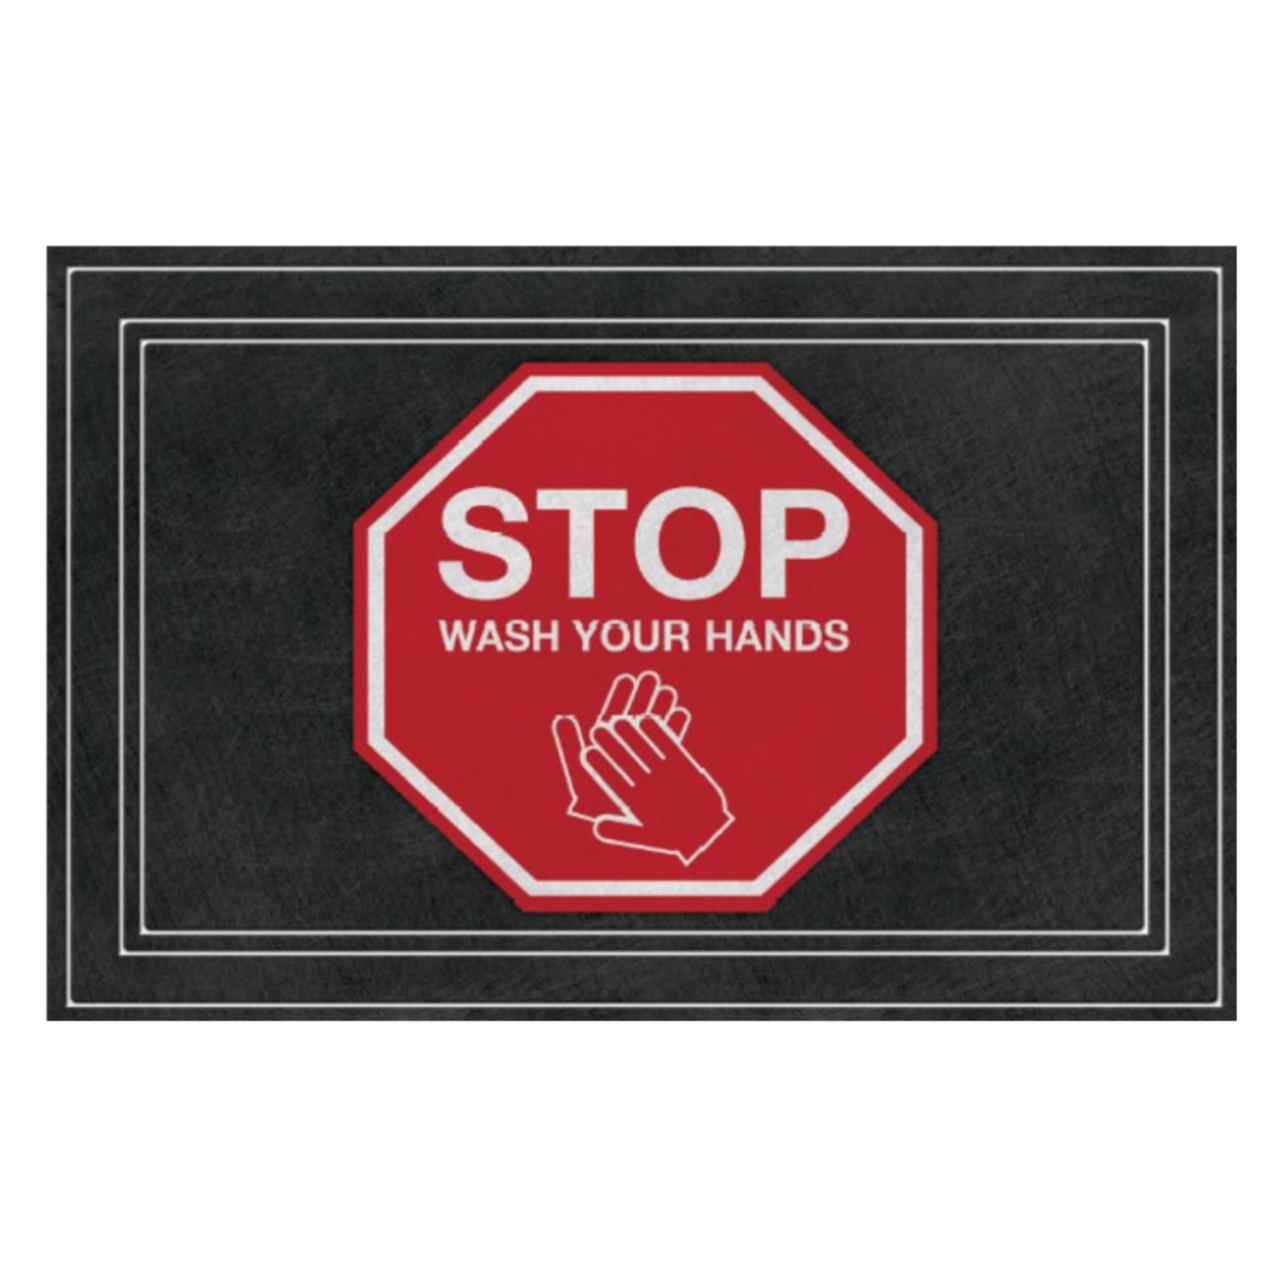 "SANIGUARD Germ Protection Awareness Rubber Molded Recycled Mat Wash Your Hands Red 24"" x 36"""